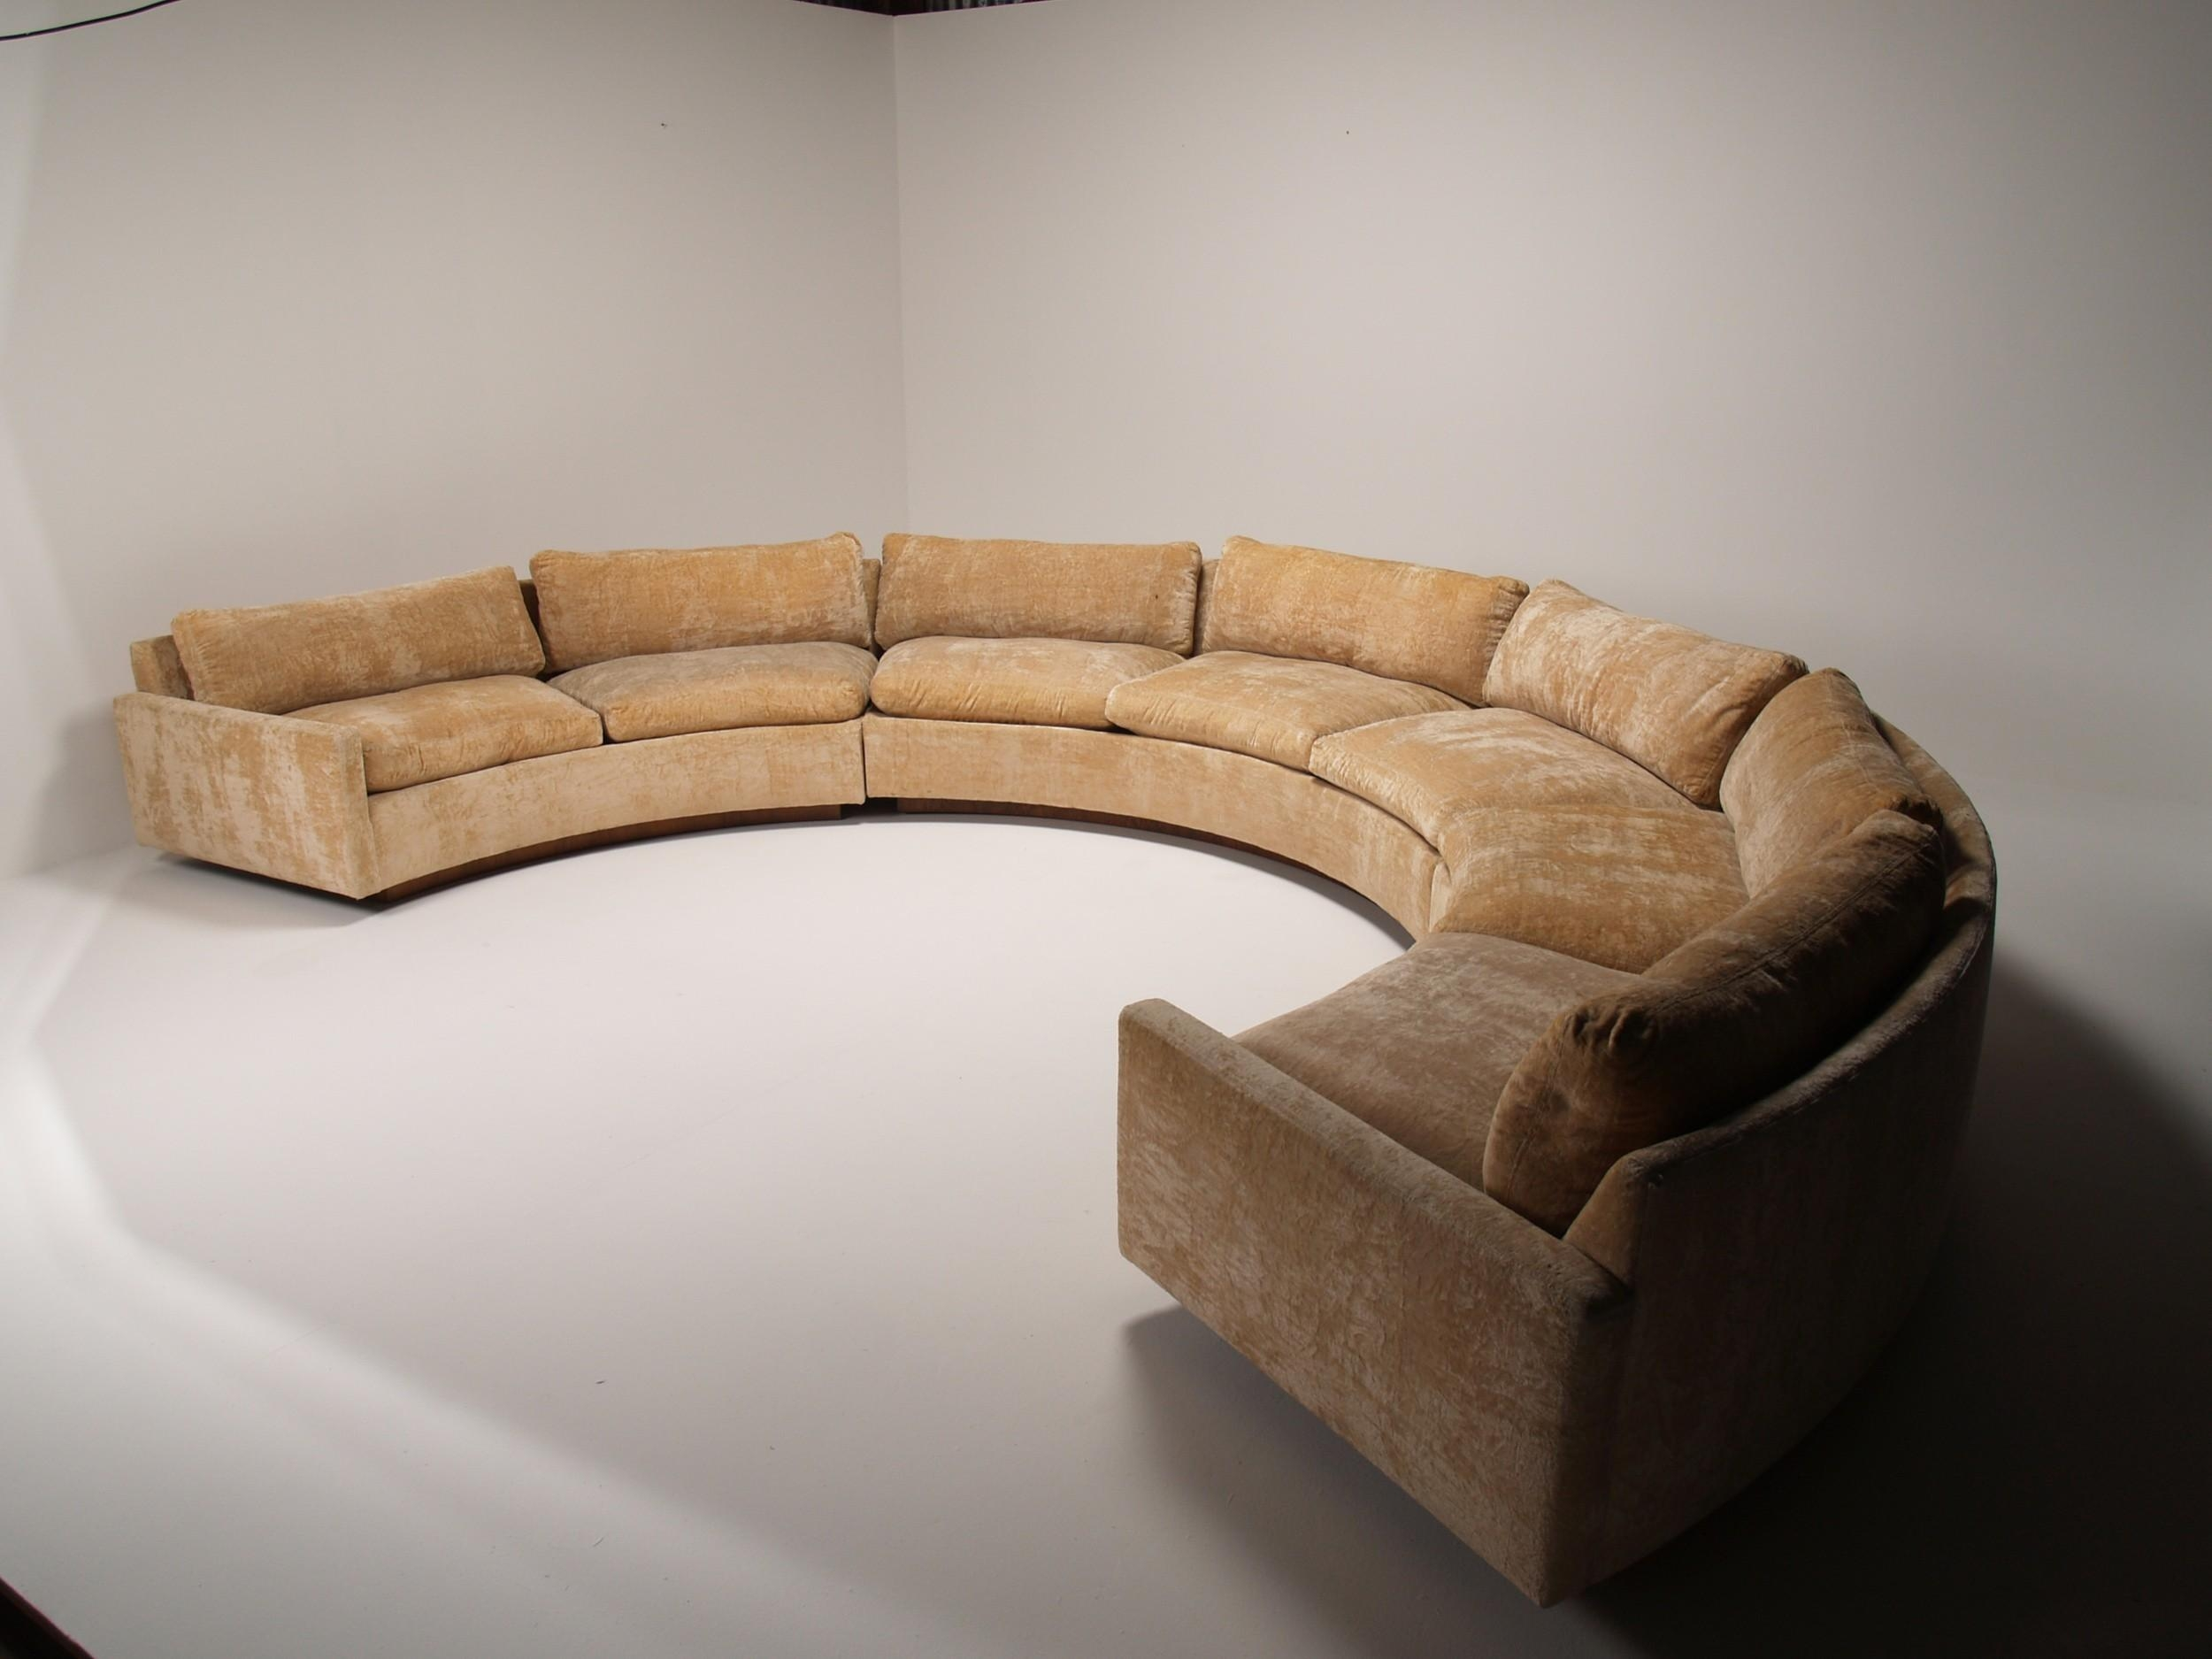 circular couches living room furniture decorating ideas 2018 latest leather curved sectional | sofa